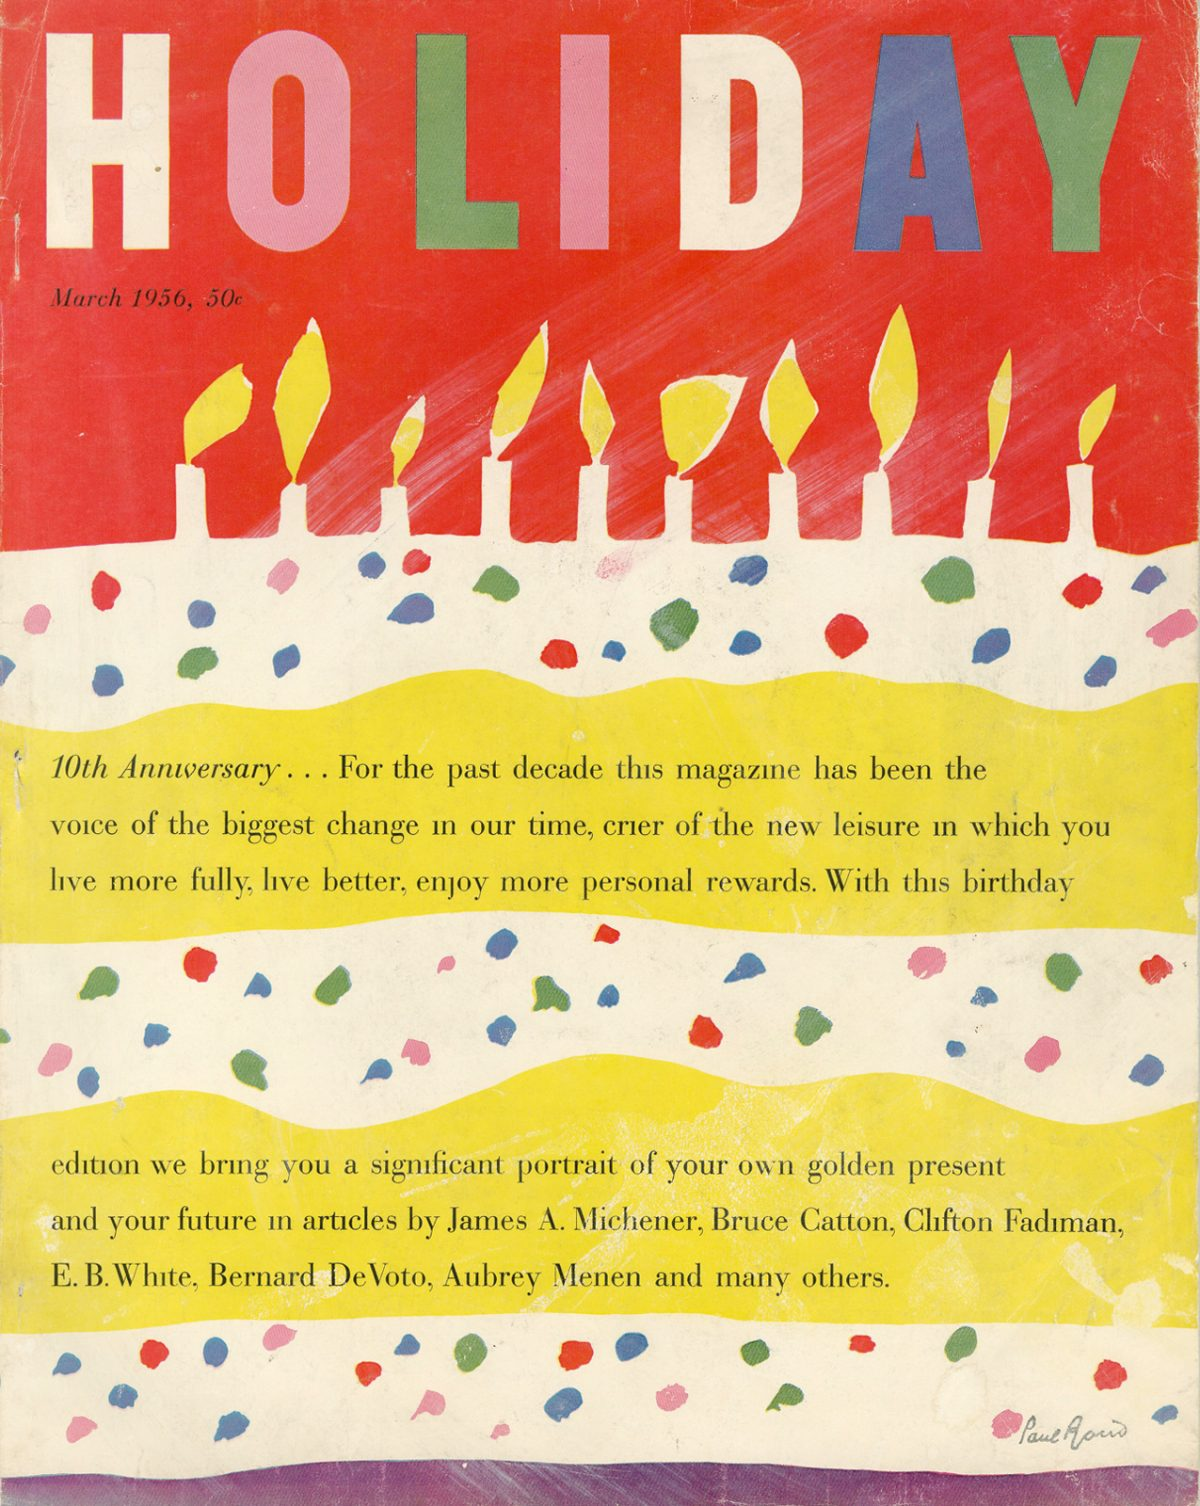 Holiday, March 1956. Cover artwork by Paul Rand.